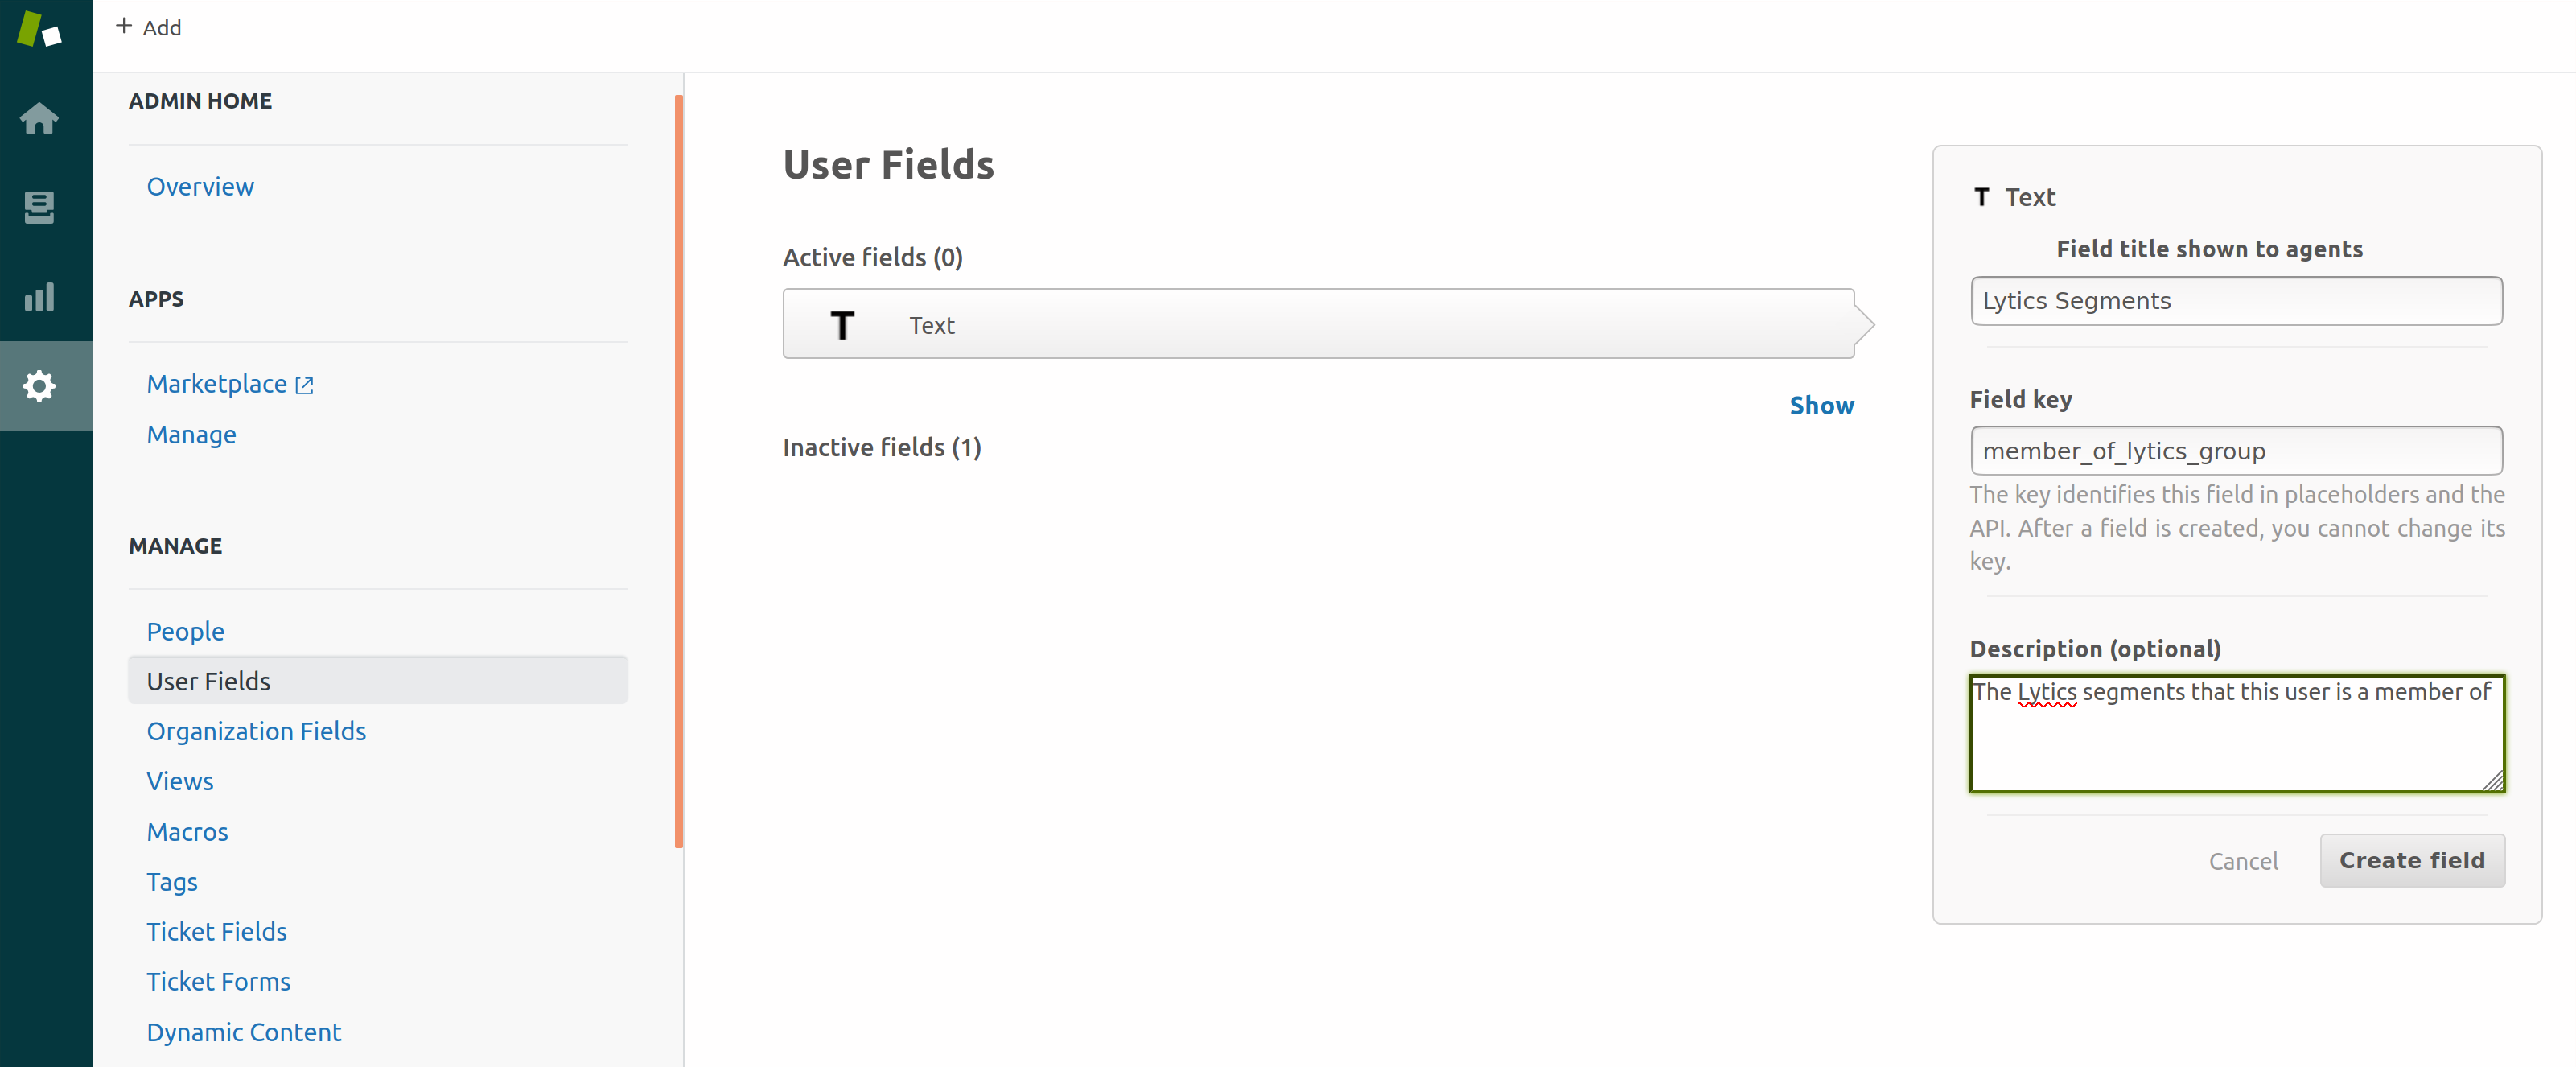 text user field correct fieldkey